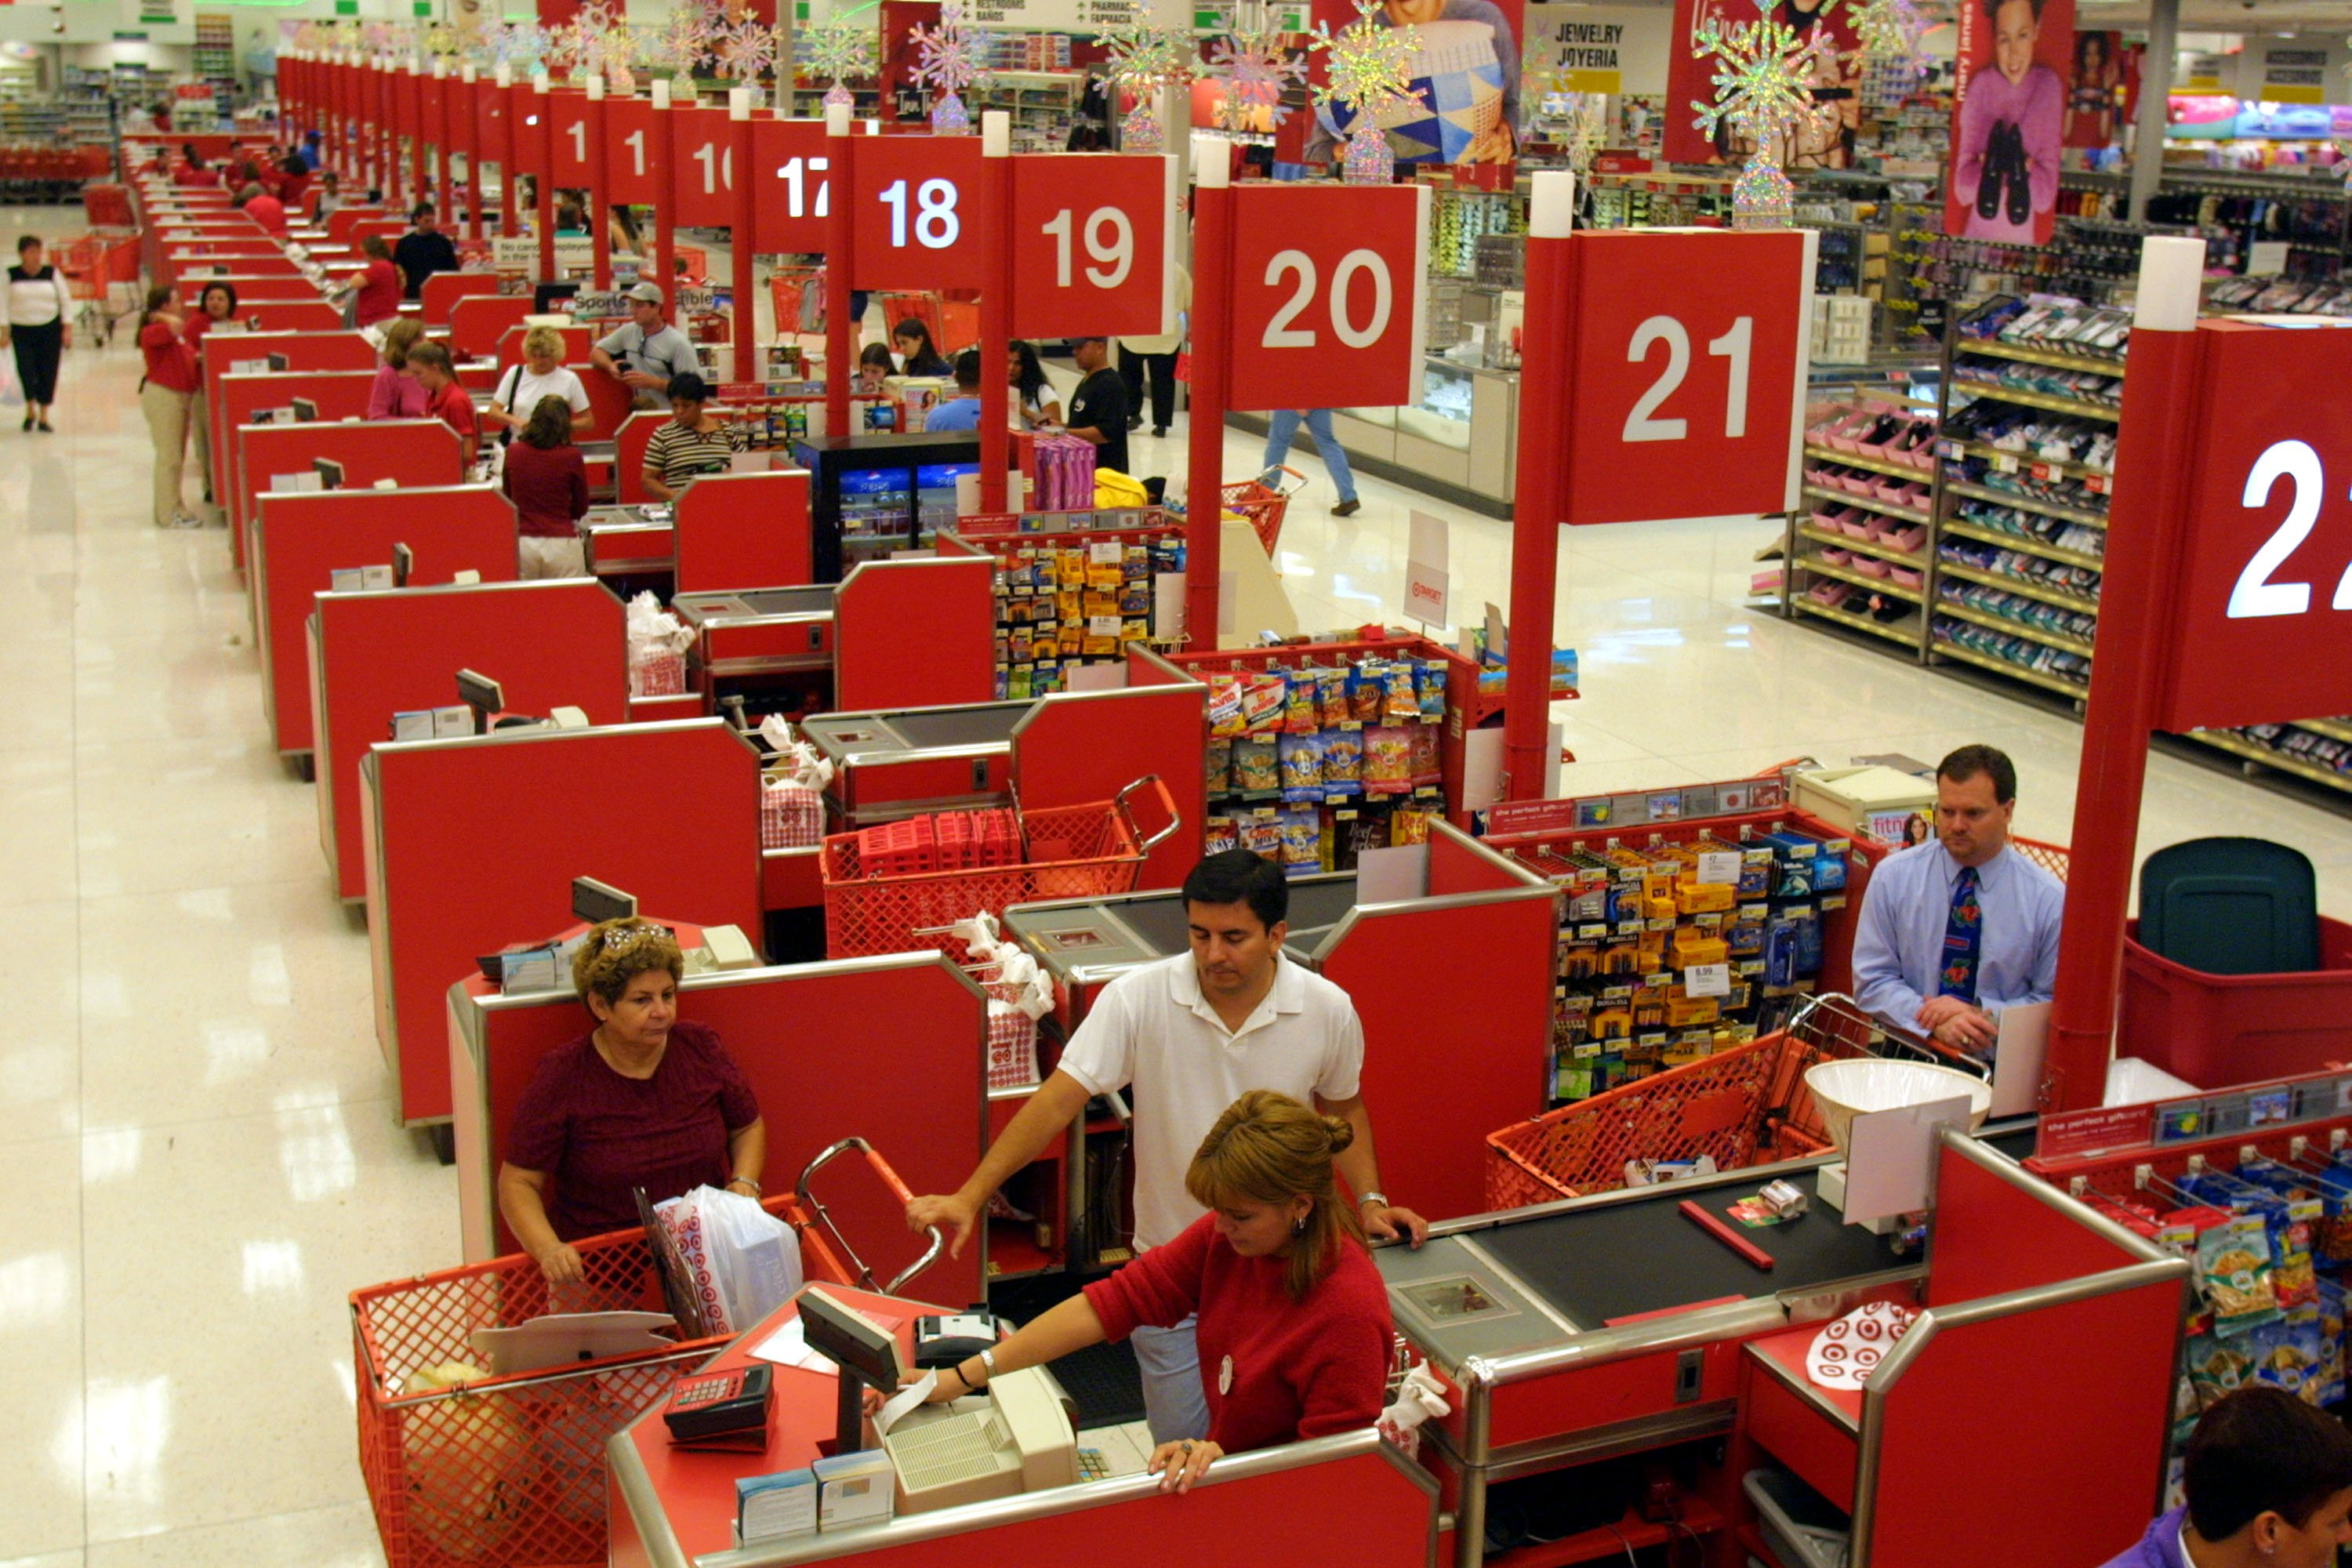 Shoppers purchase their items at the checkout counter in the Target department store at Sawgrass Mills Shopping Center November 19, 2001 in Sunrise, Florida. (Photo by Joe Raedle/Getty Images)